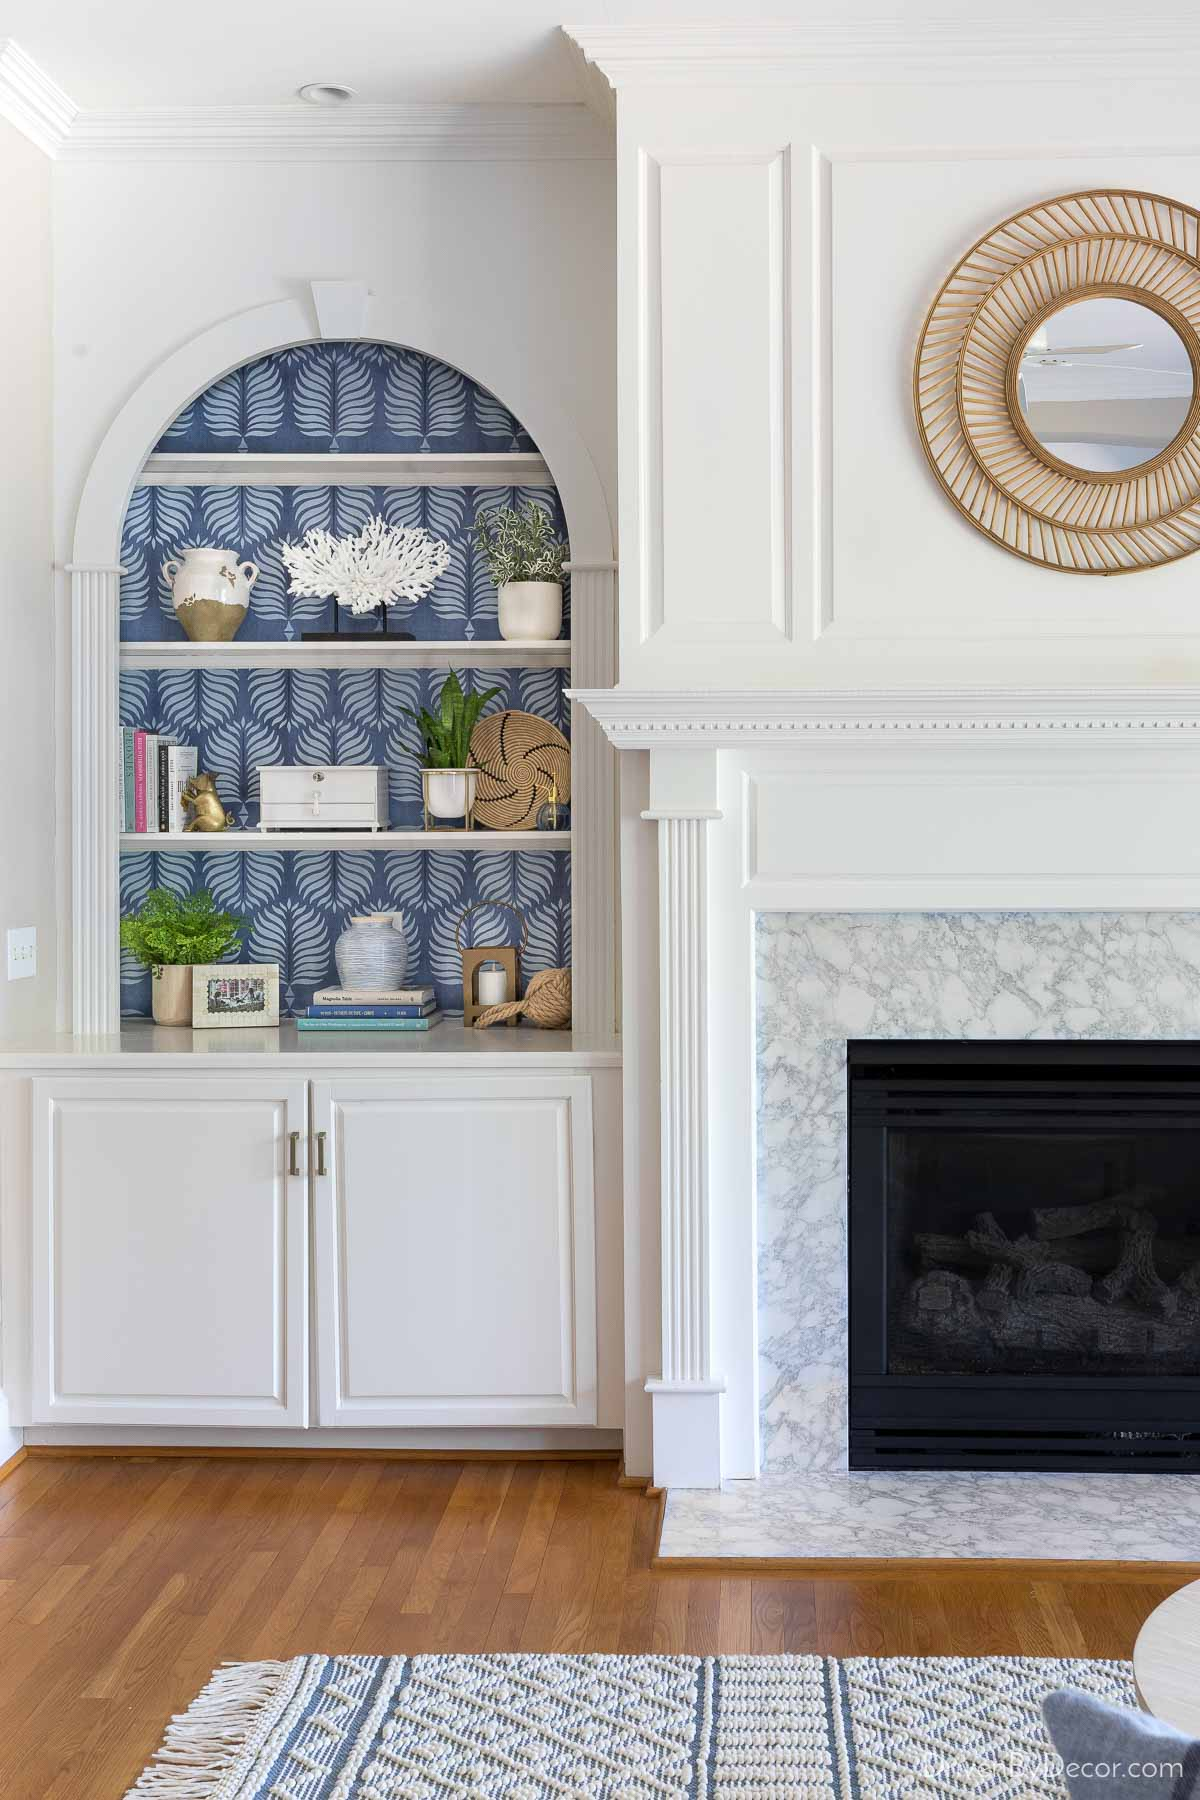 A favorite wallpaper idea - add a patterned or textured wallpaper to the back of a bookcase!